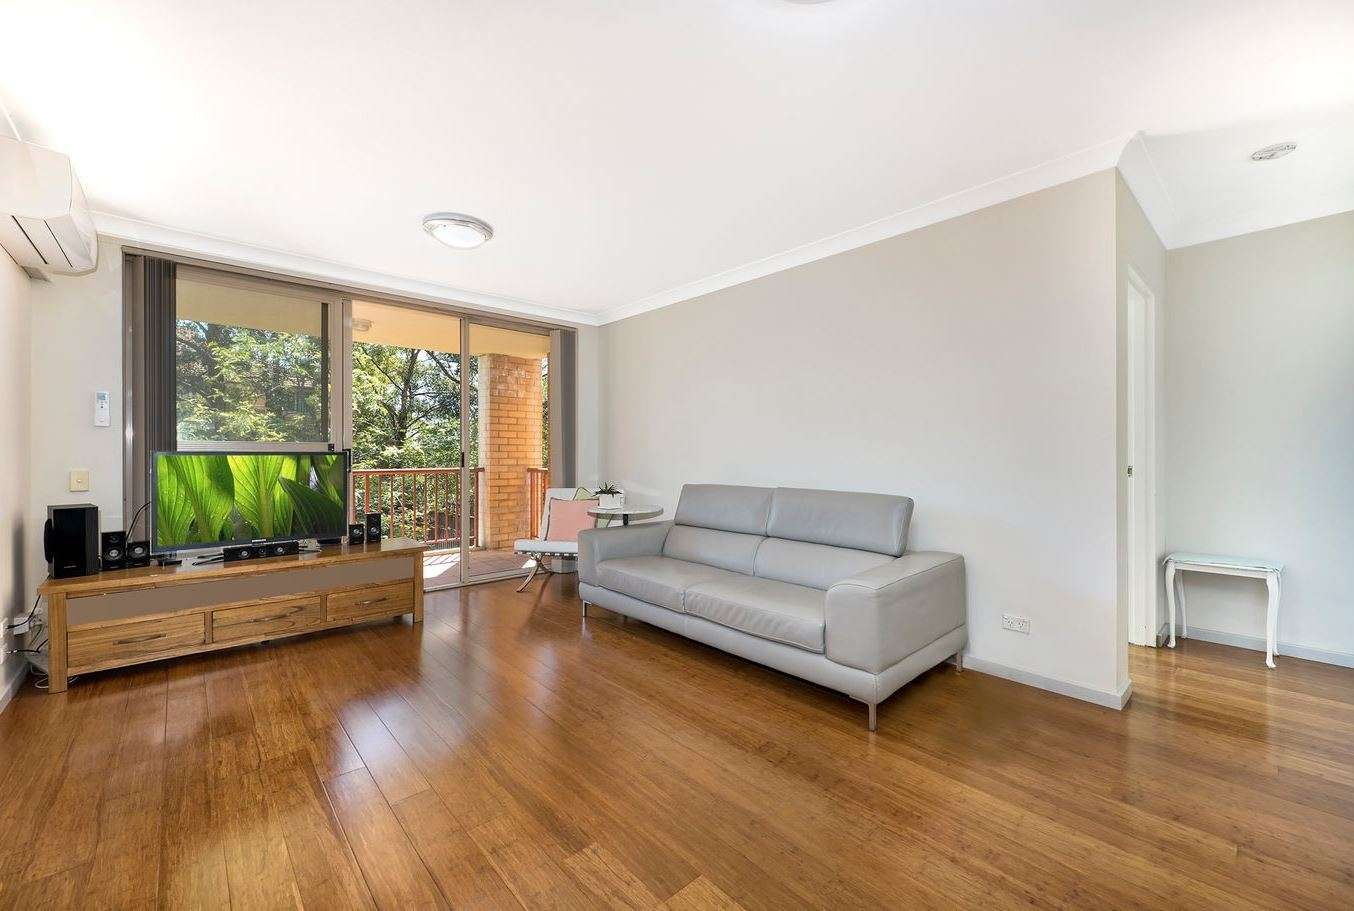 Main view of Homely apartment listing, 5G/19-21 George Street, North Strathfield, NSW 2137